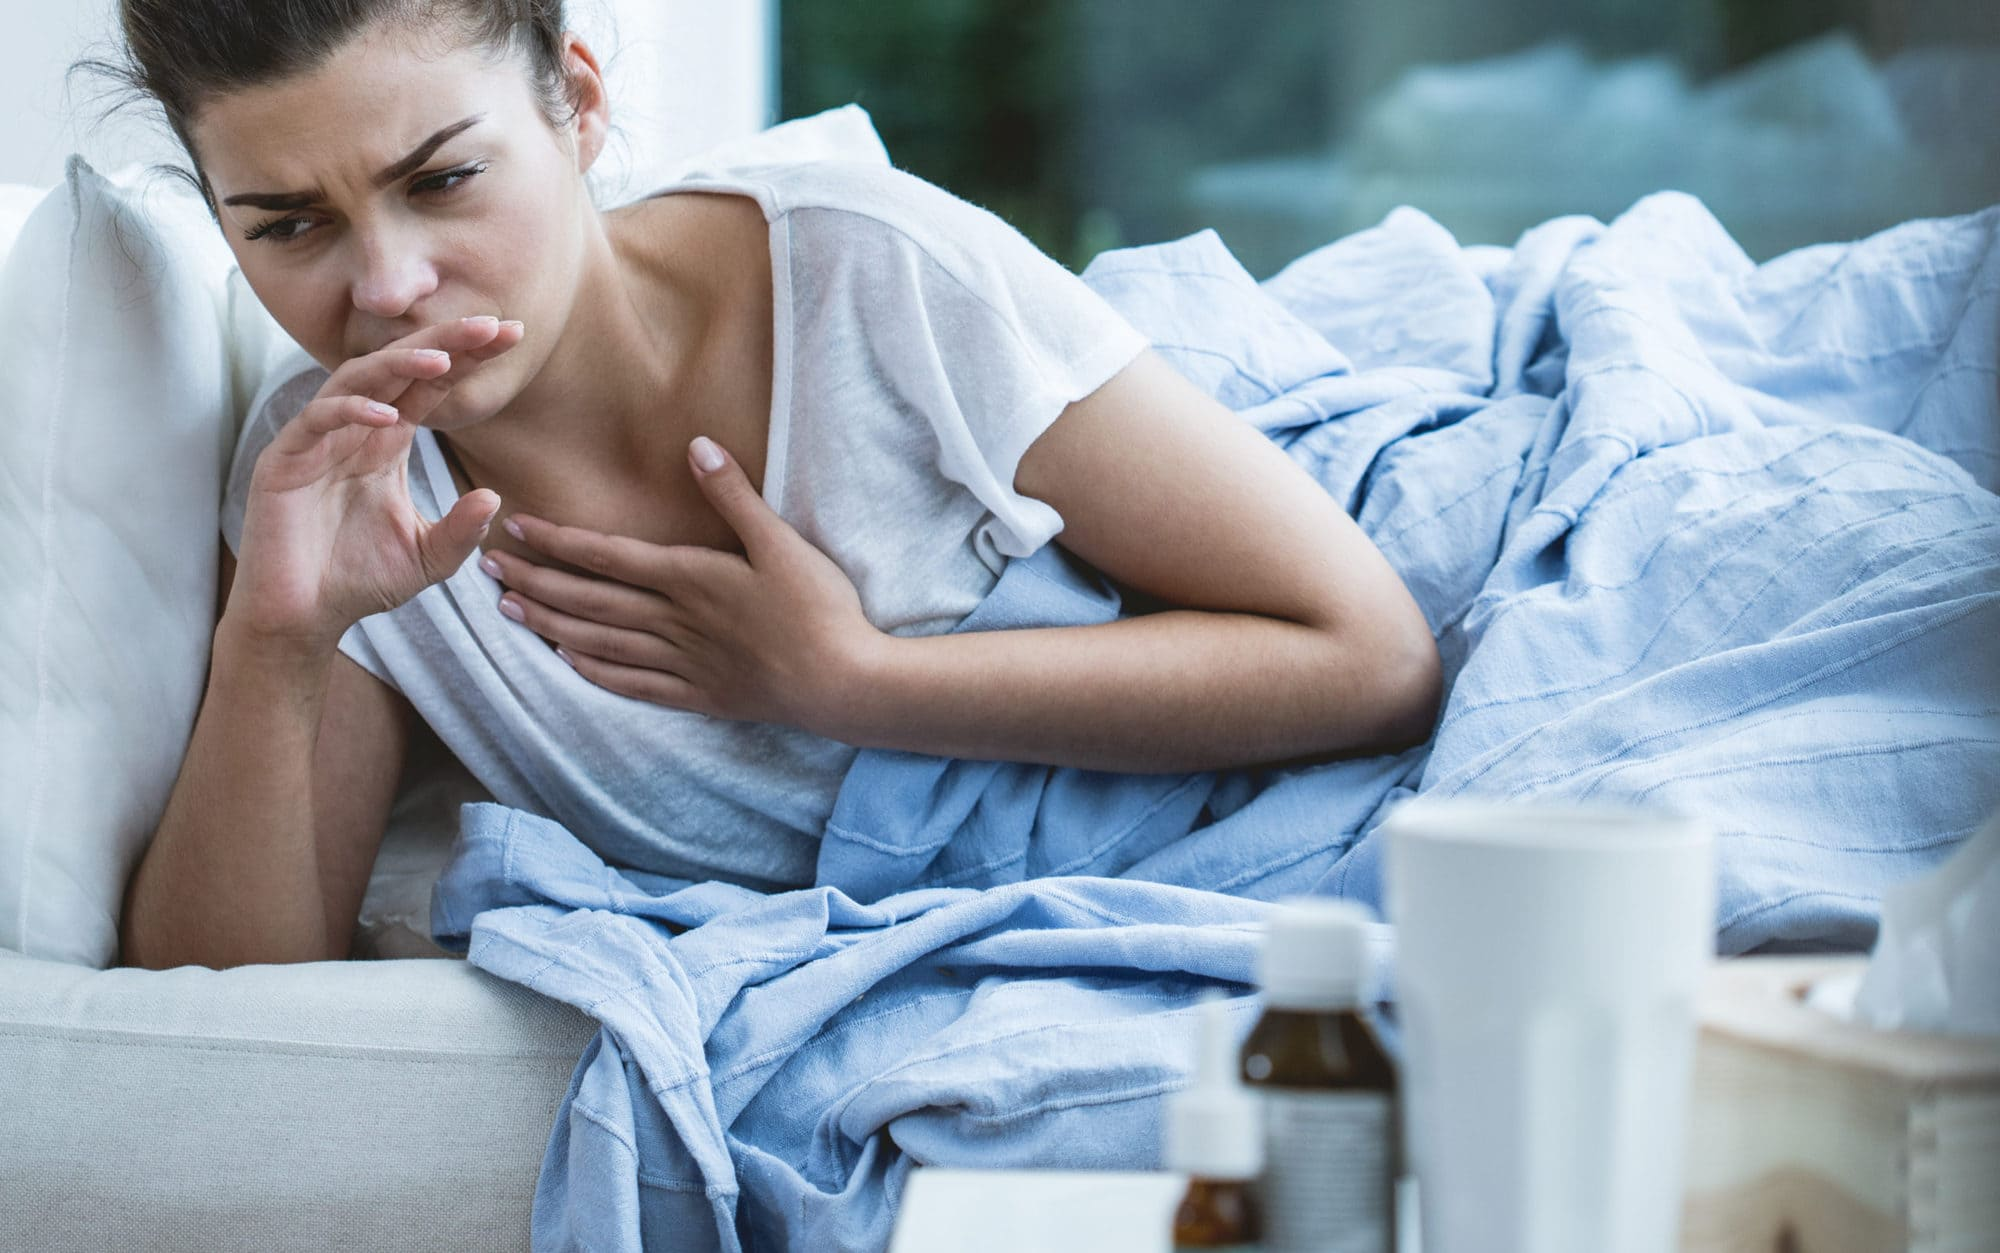 Picture of sick woman with cough and virus infection